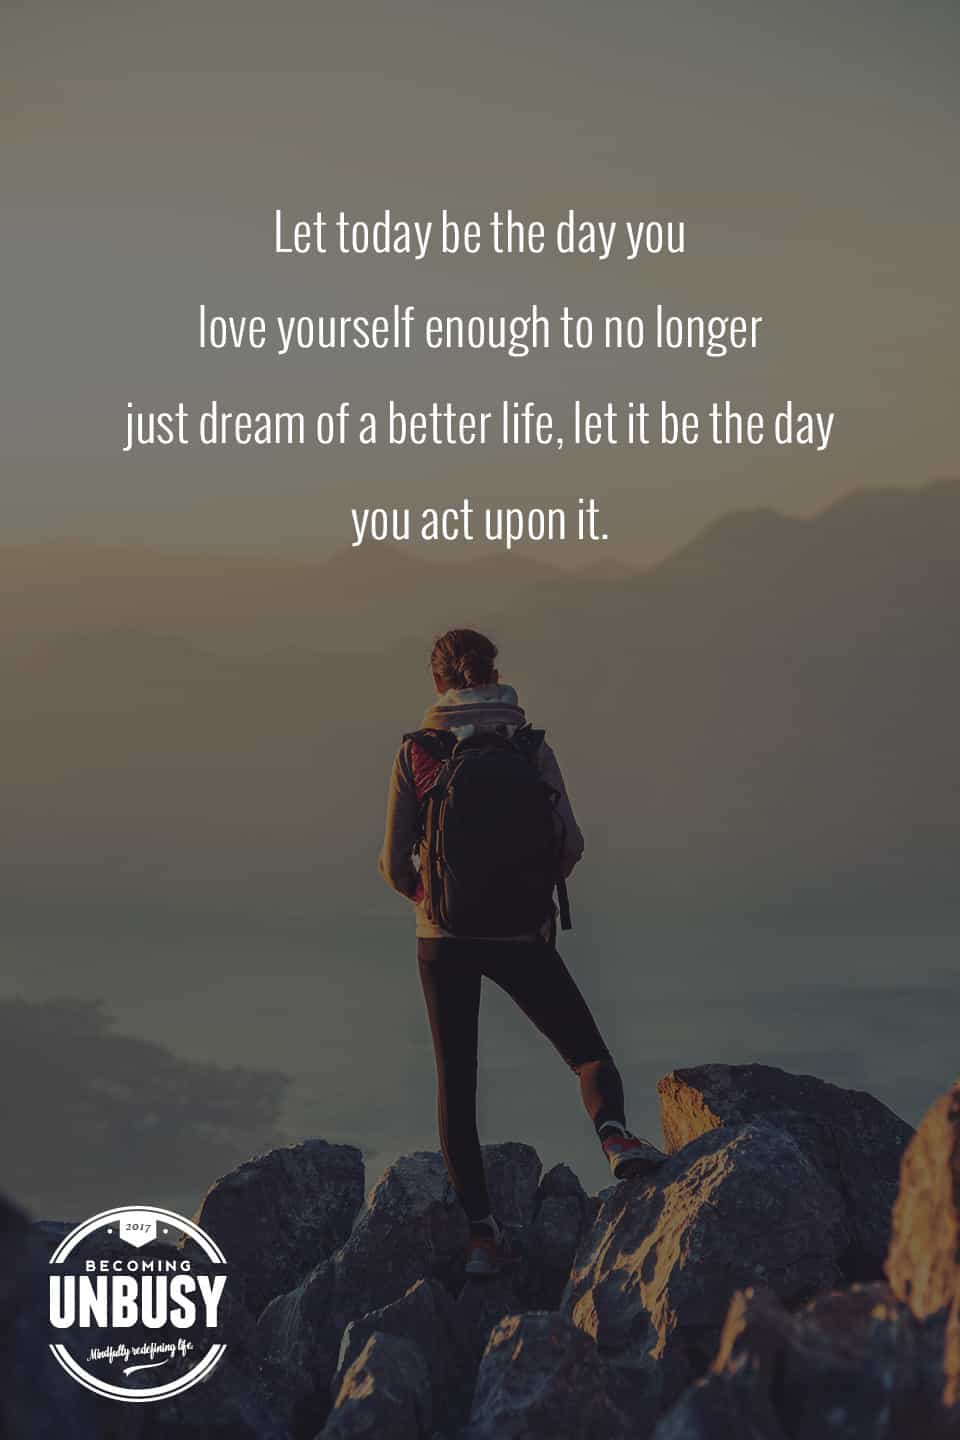 Let today be the day you love yourself enough to no longer just dream of a better life, let it be the day you act upon it. -- 10 inspirational quotes about life that will help you focus on what's important #quotes #lifequotes #inspirationalquotes *Loving this collection of life quotes!